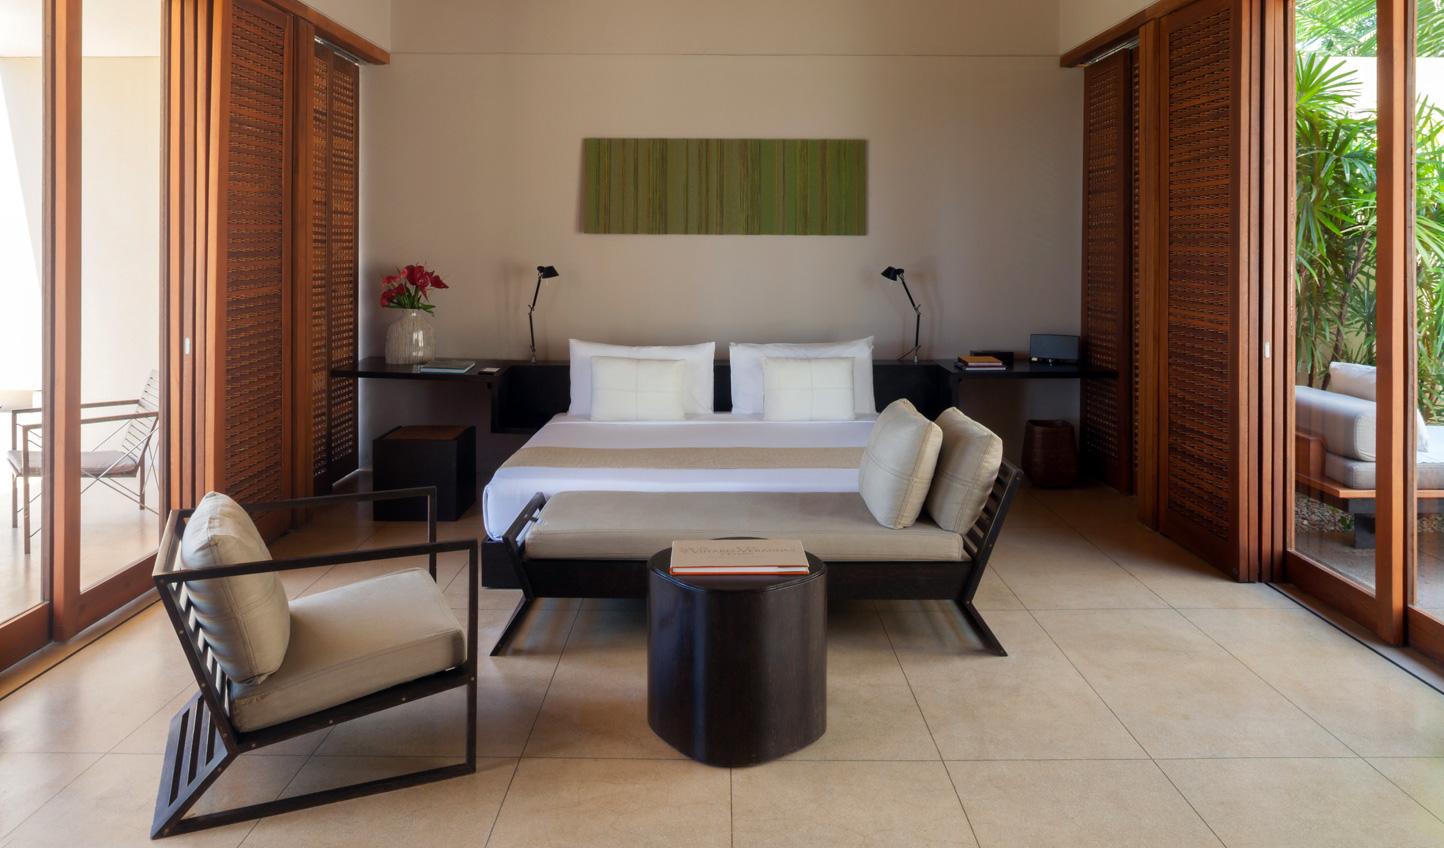 Your gorgeous guest room awaits